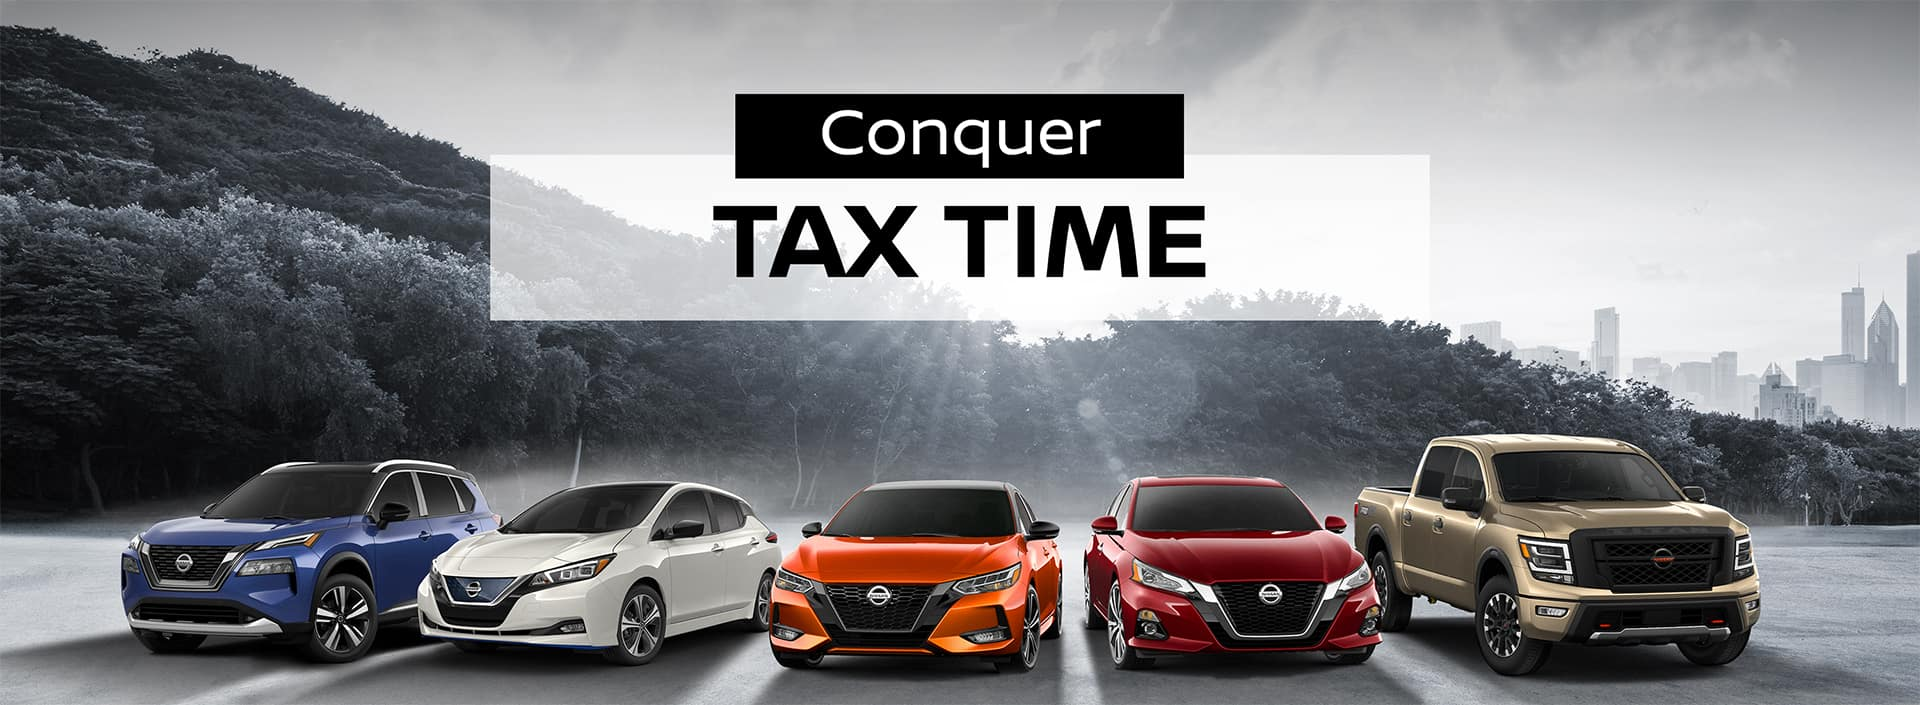 conquer tax resized